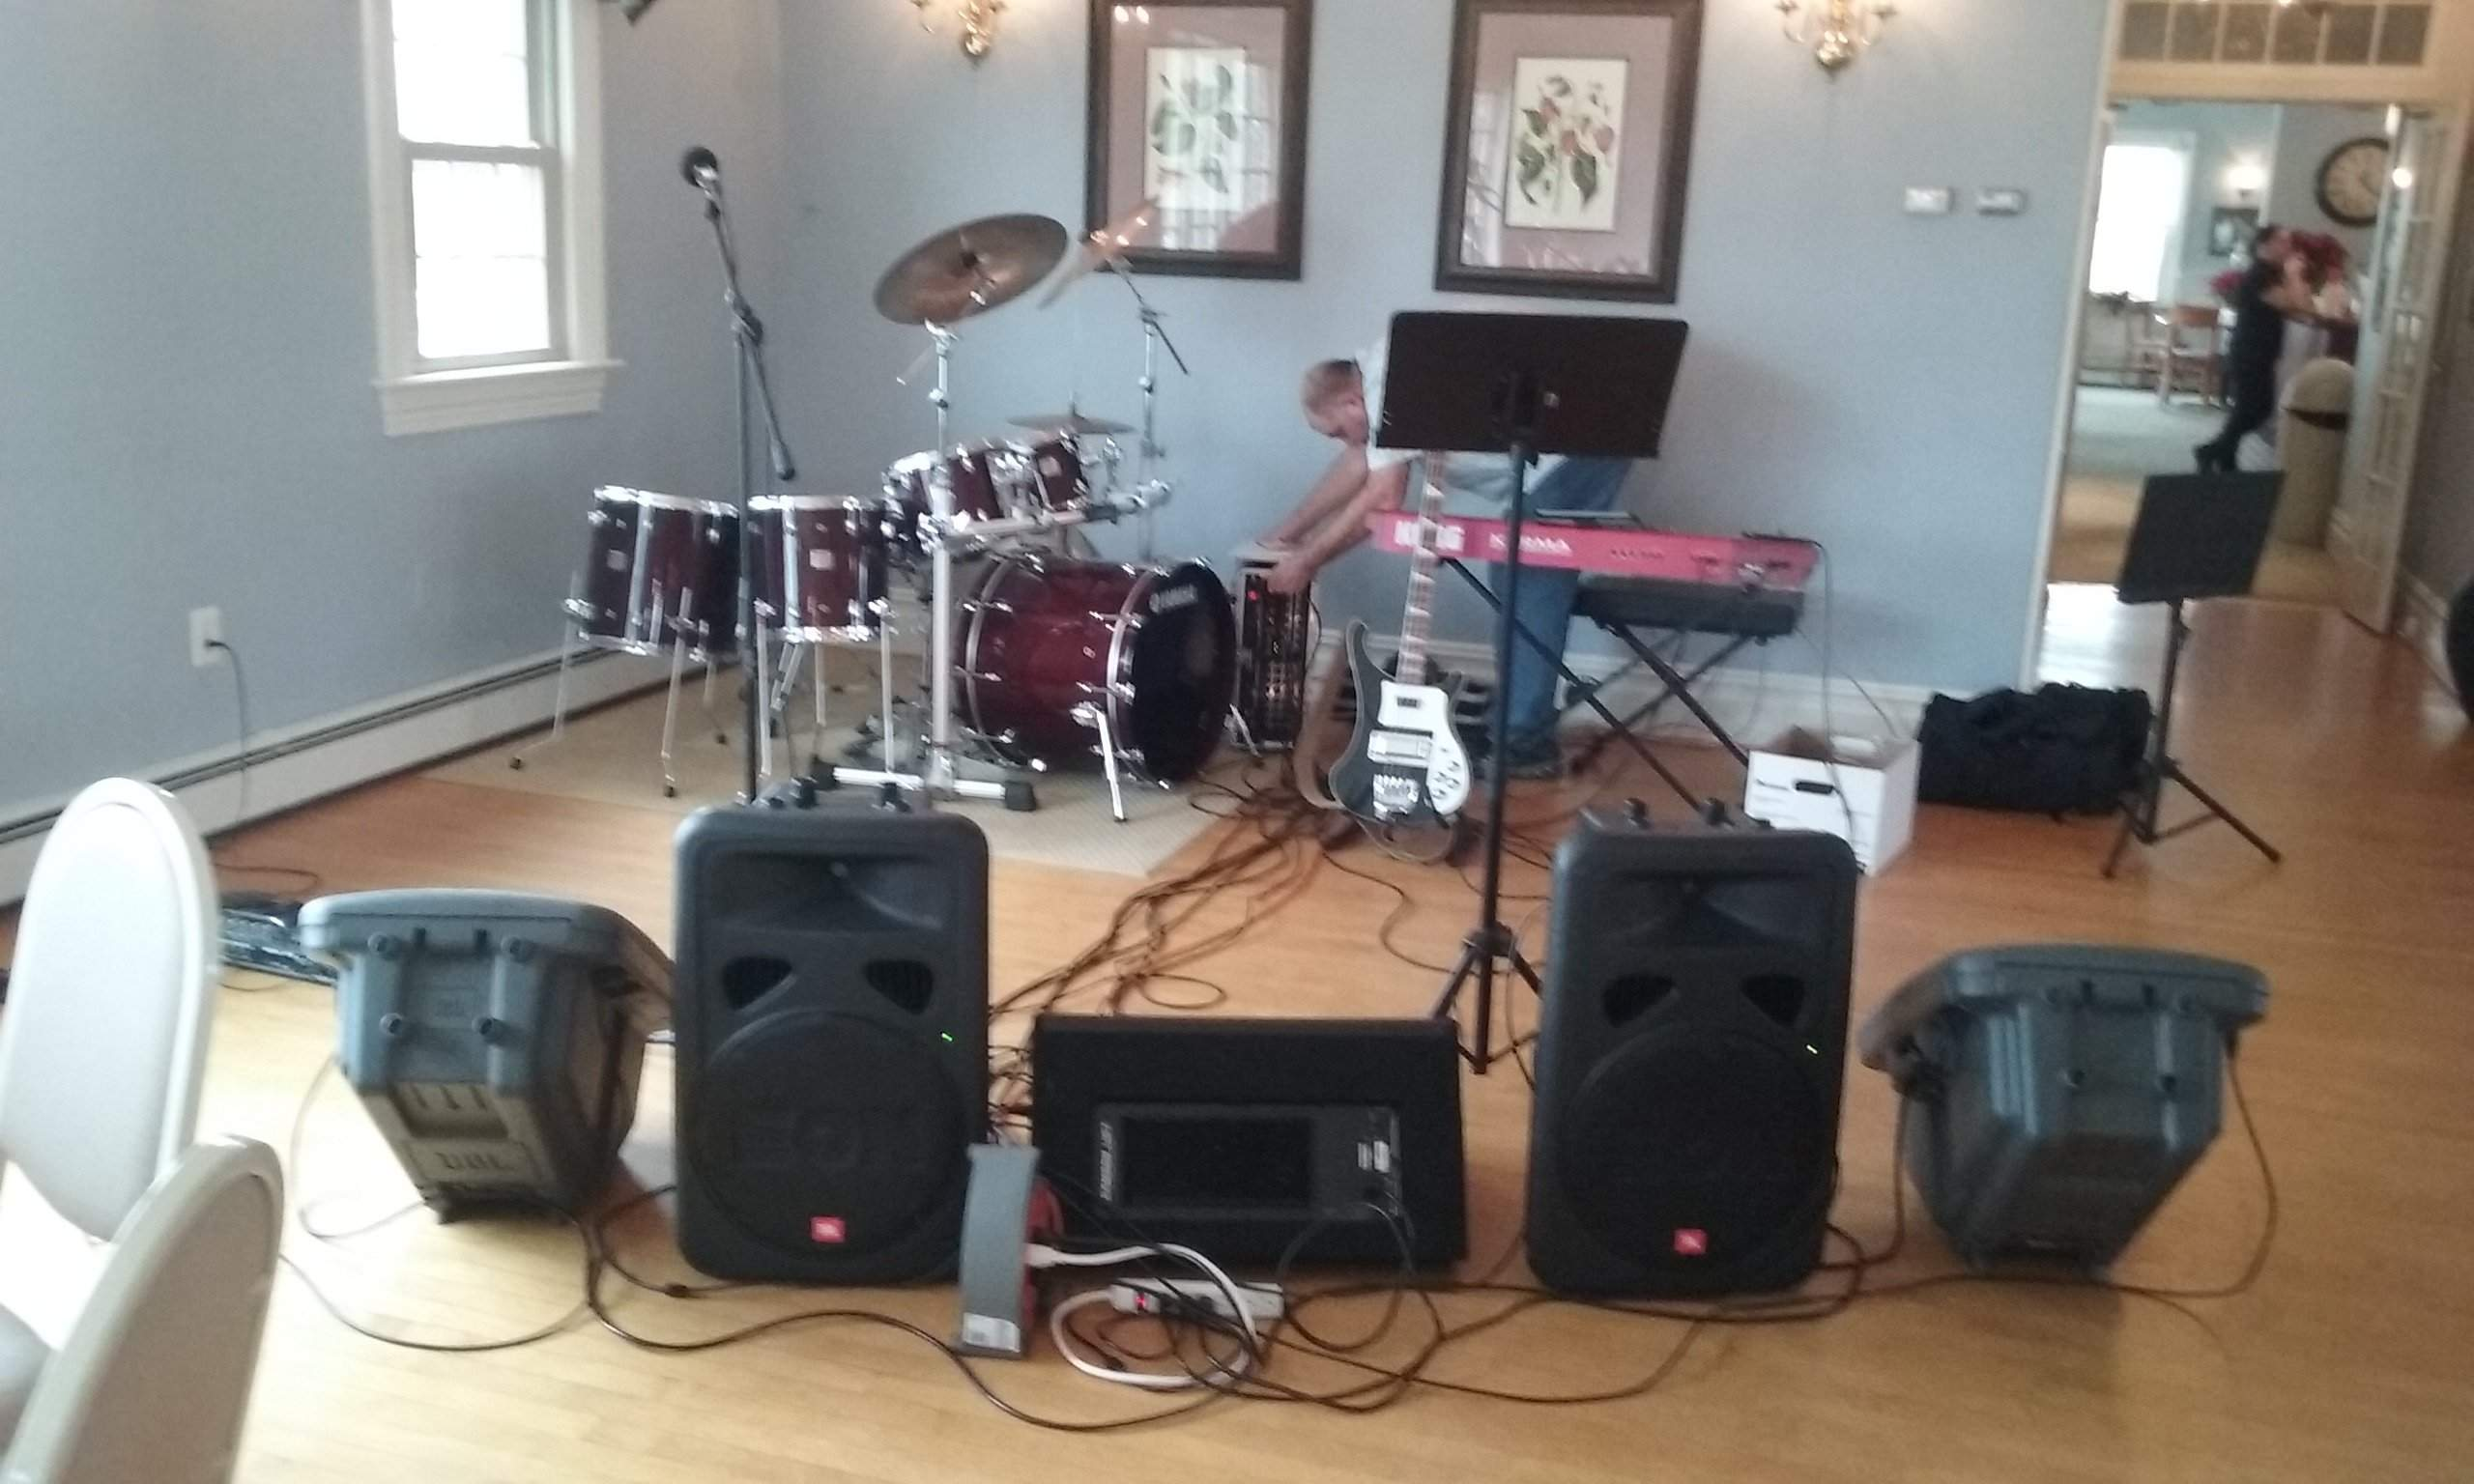 Dbase w/ The Lazy Eyed Blues Band @ Westwood Golf Club 12/18/15(w